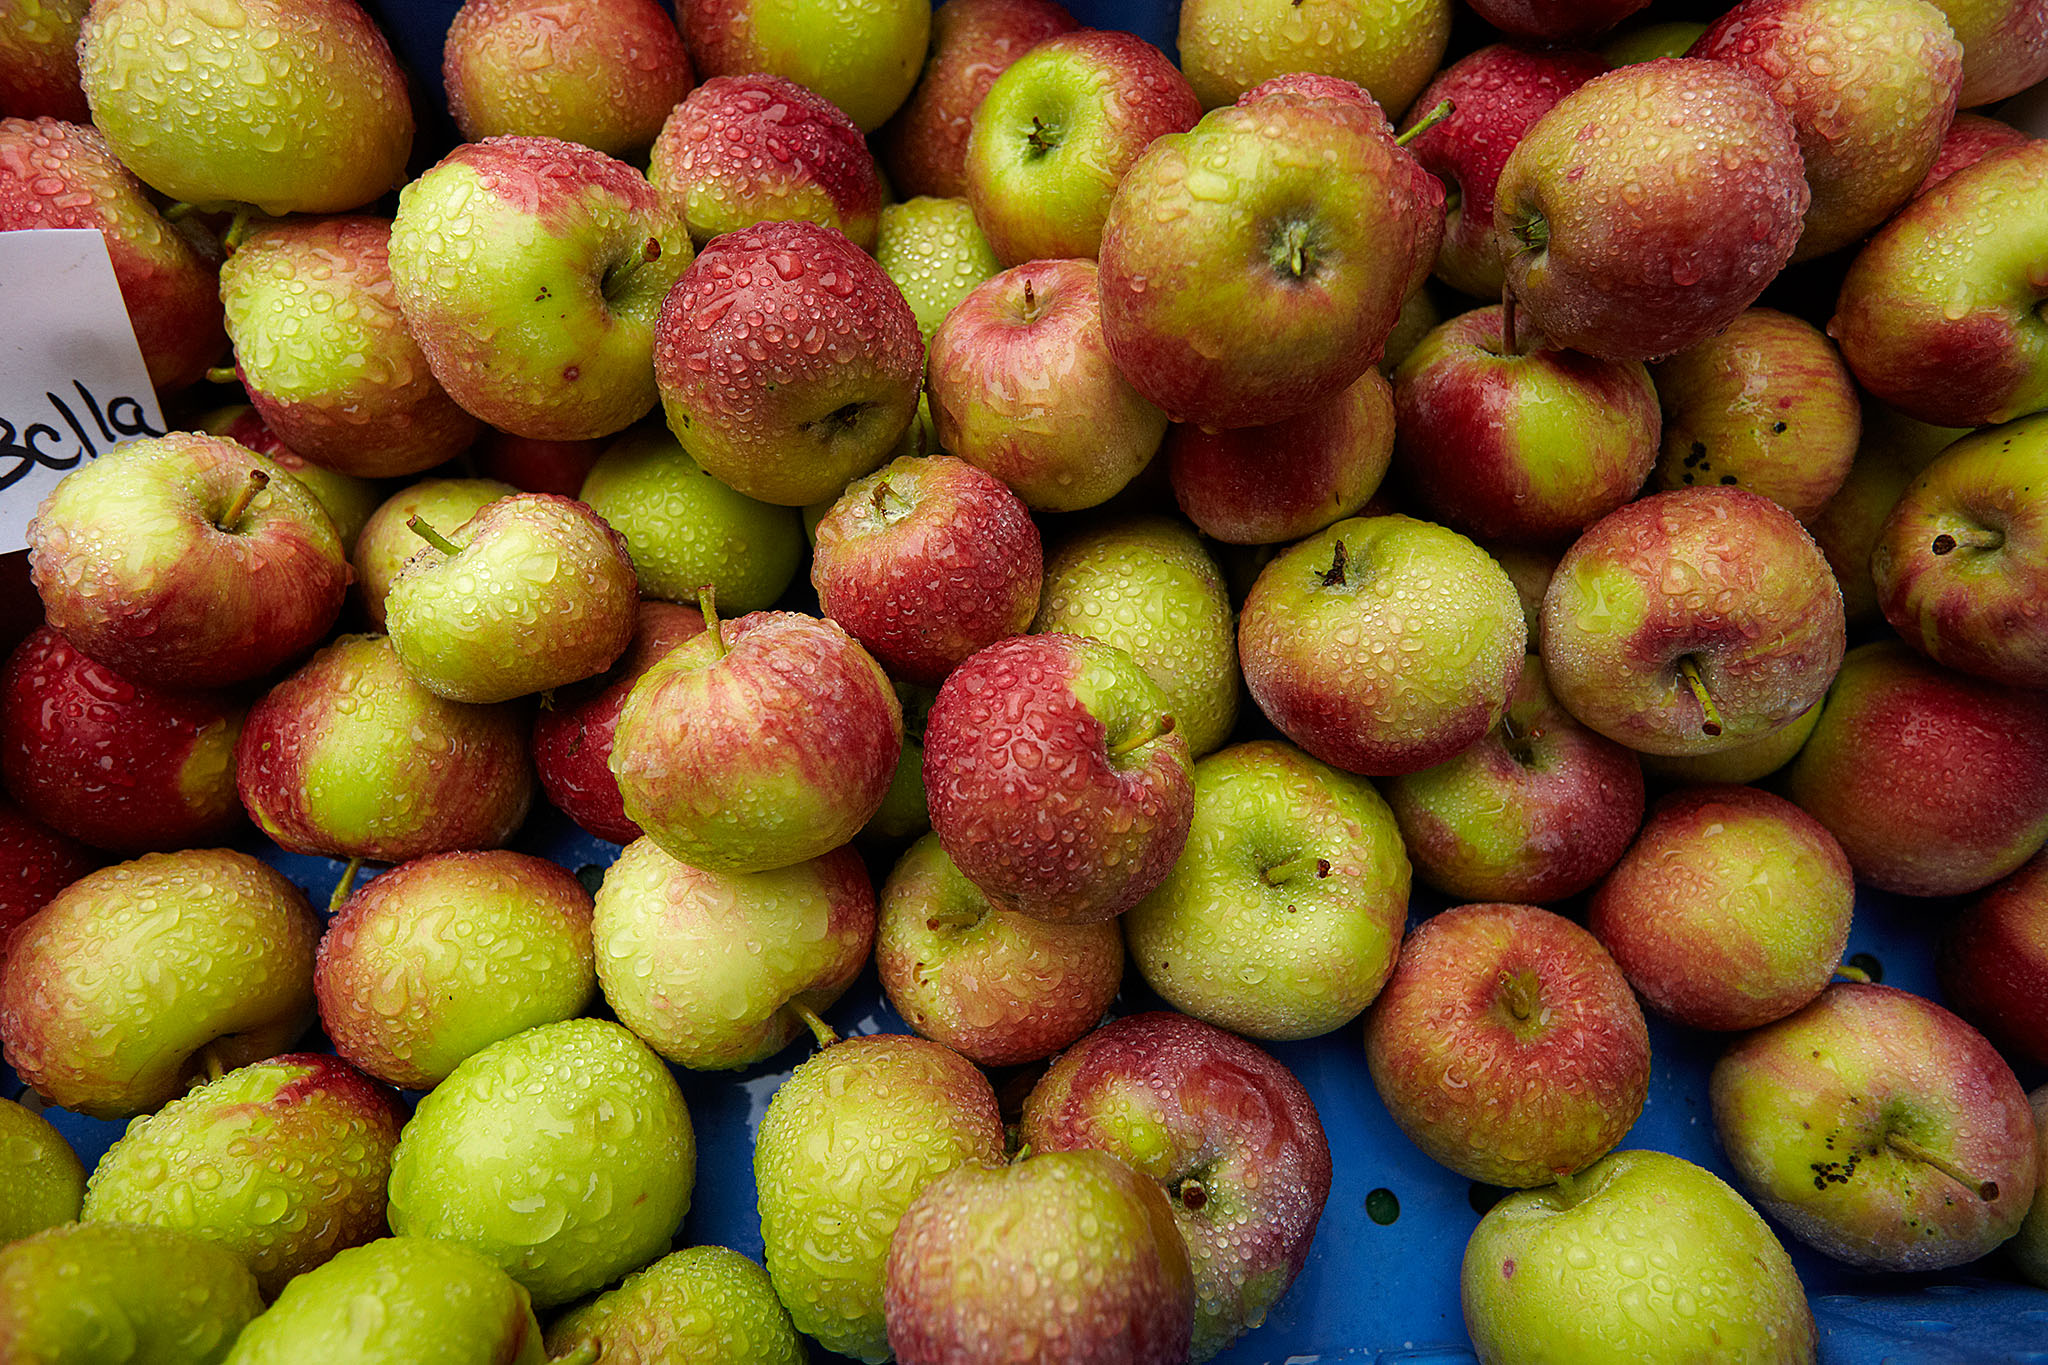 Green City Market - Apples